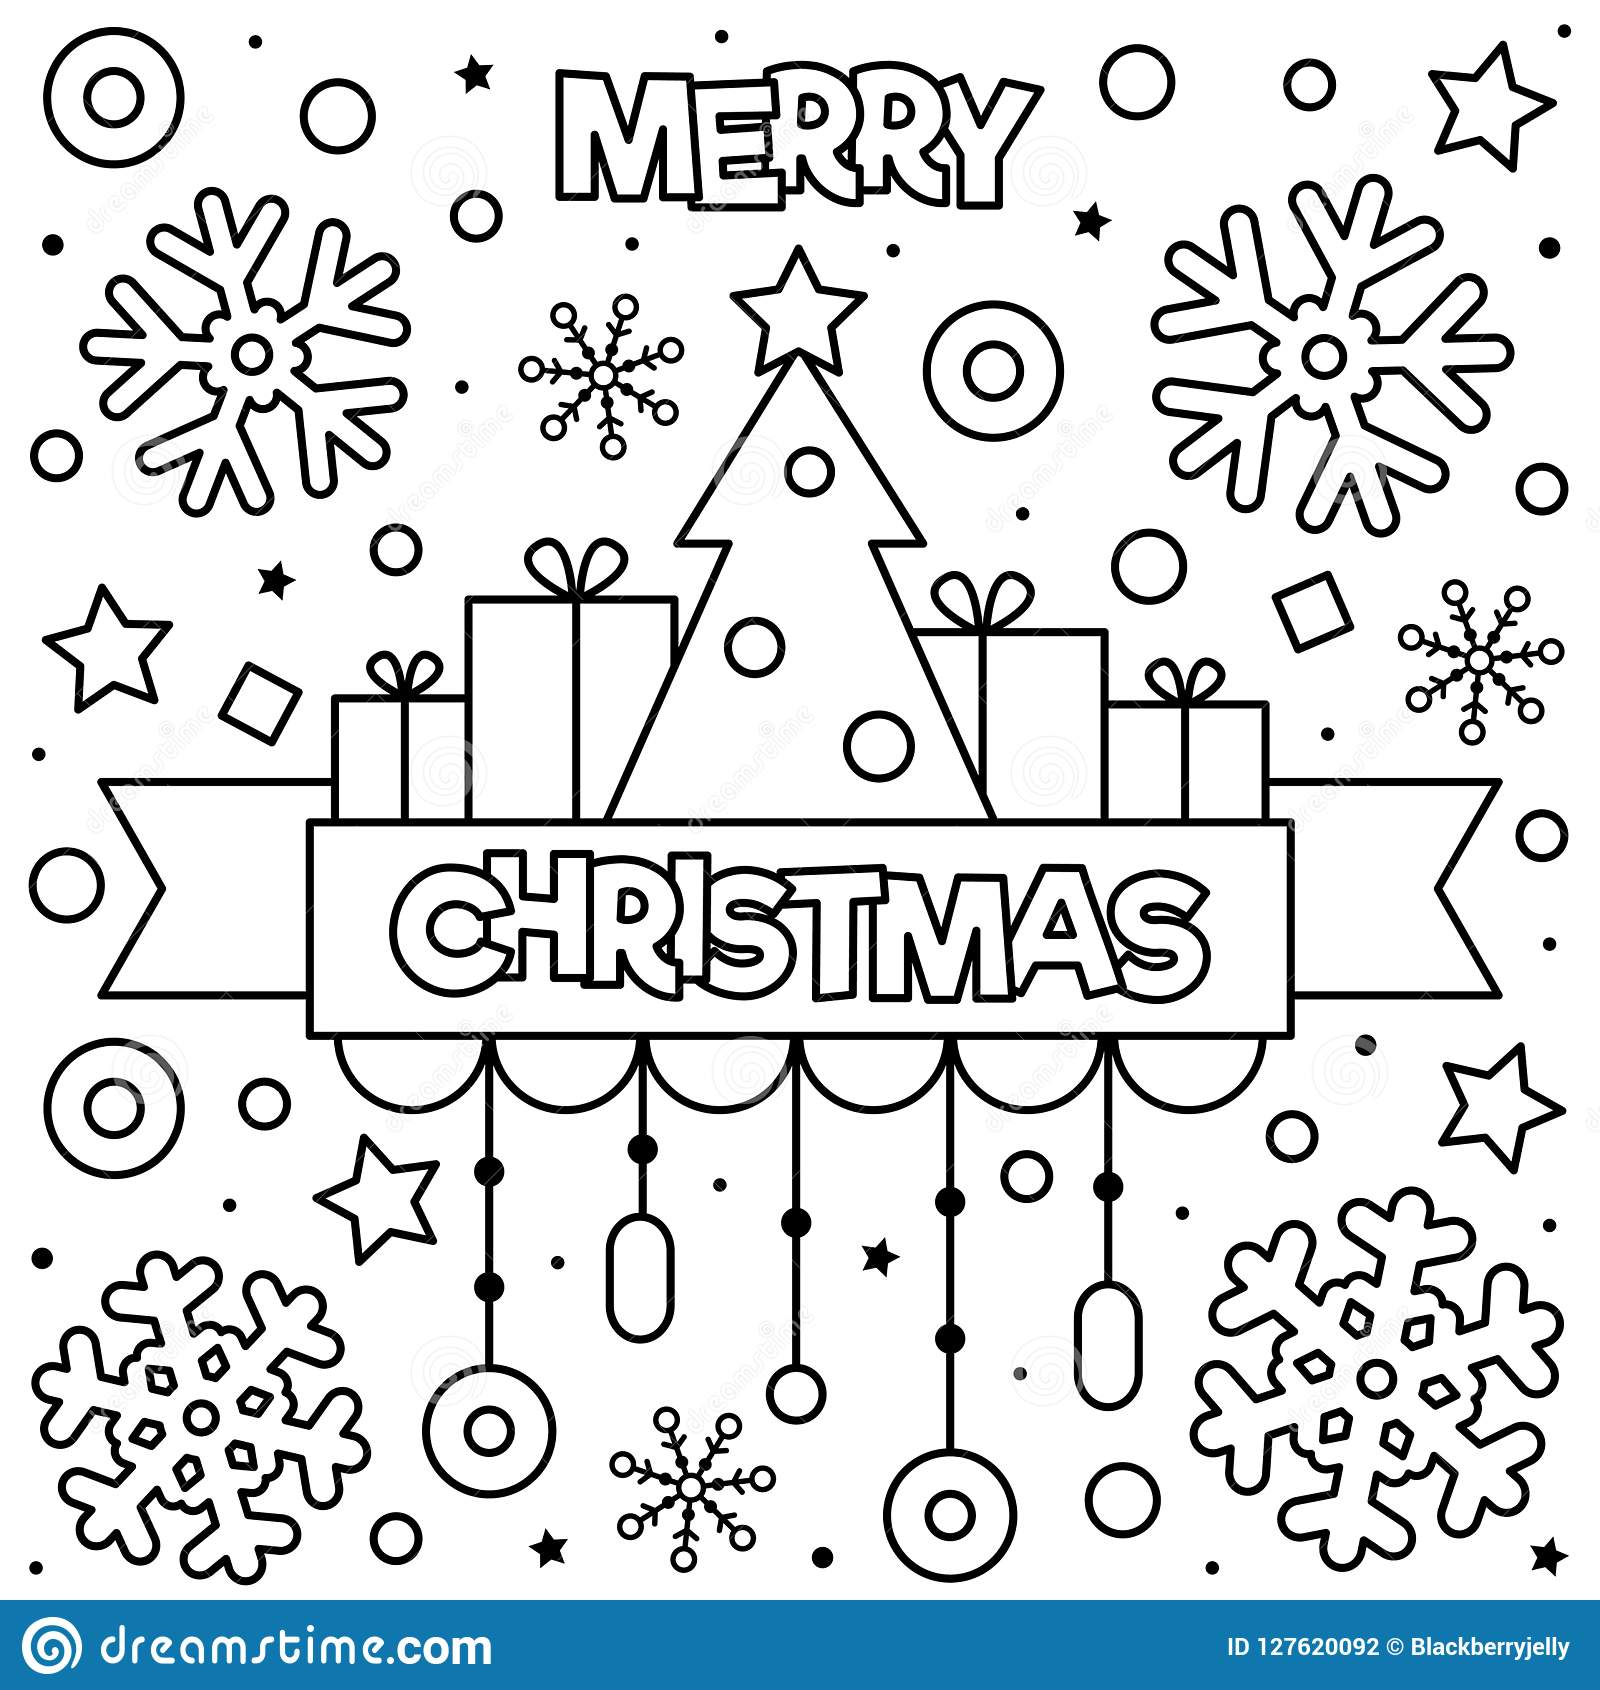 Merry Christmas Coloring Page Black And White Vector